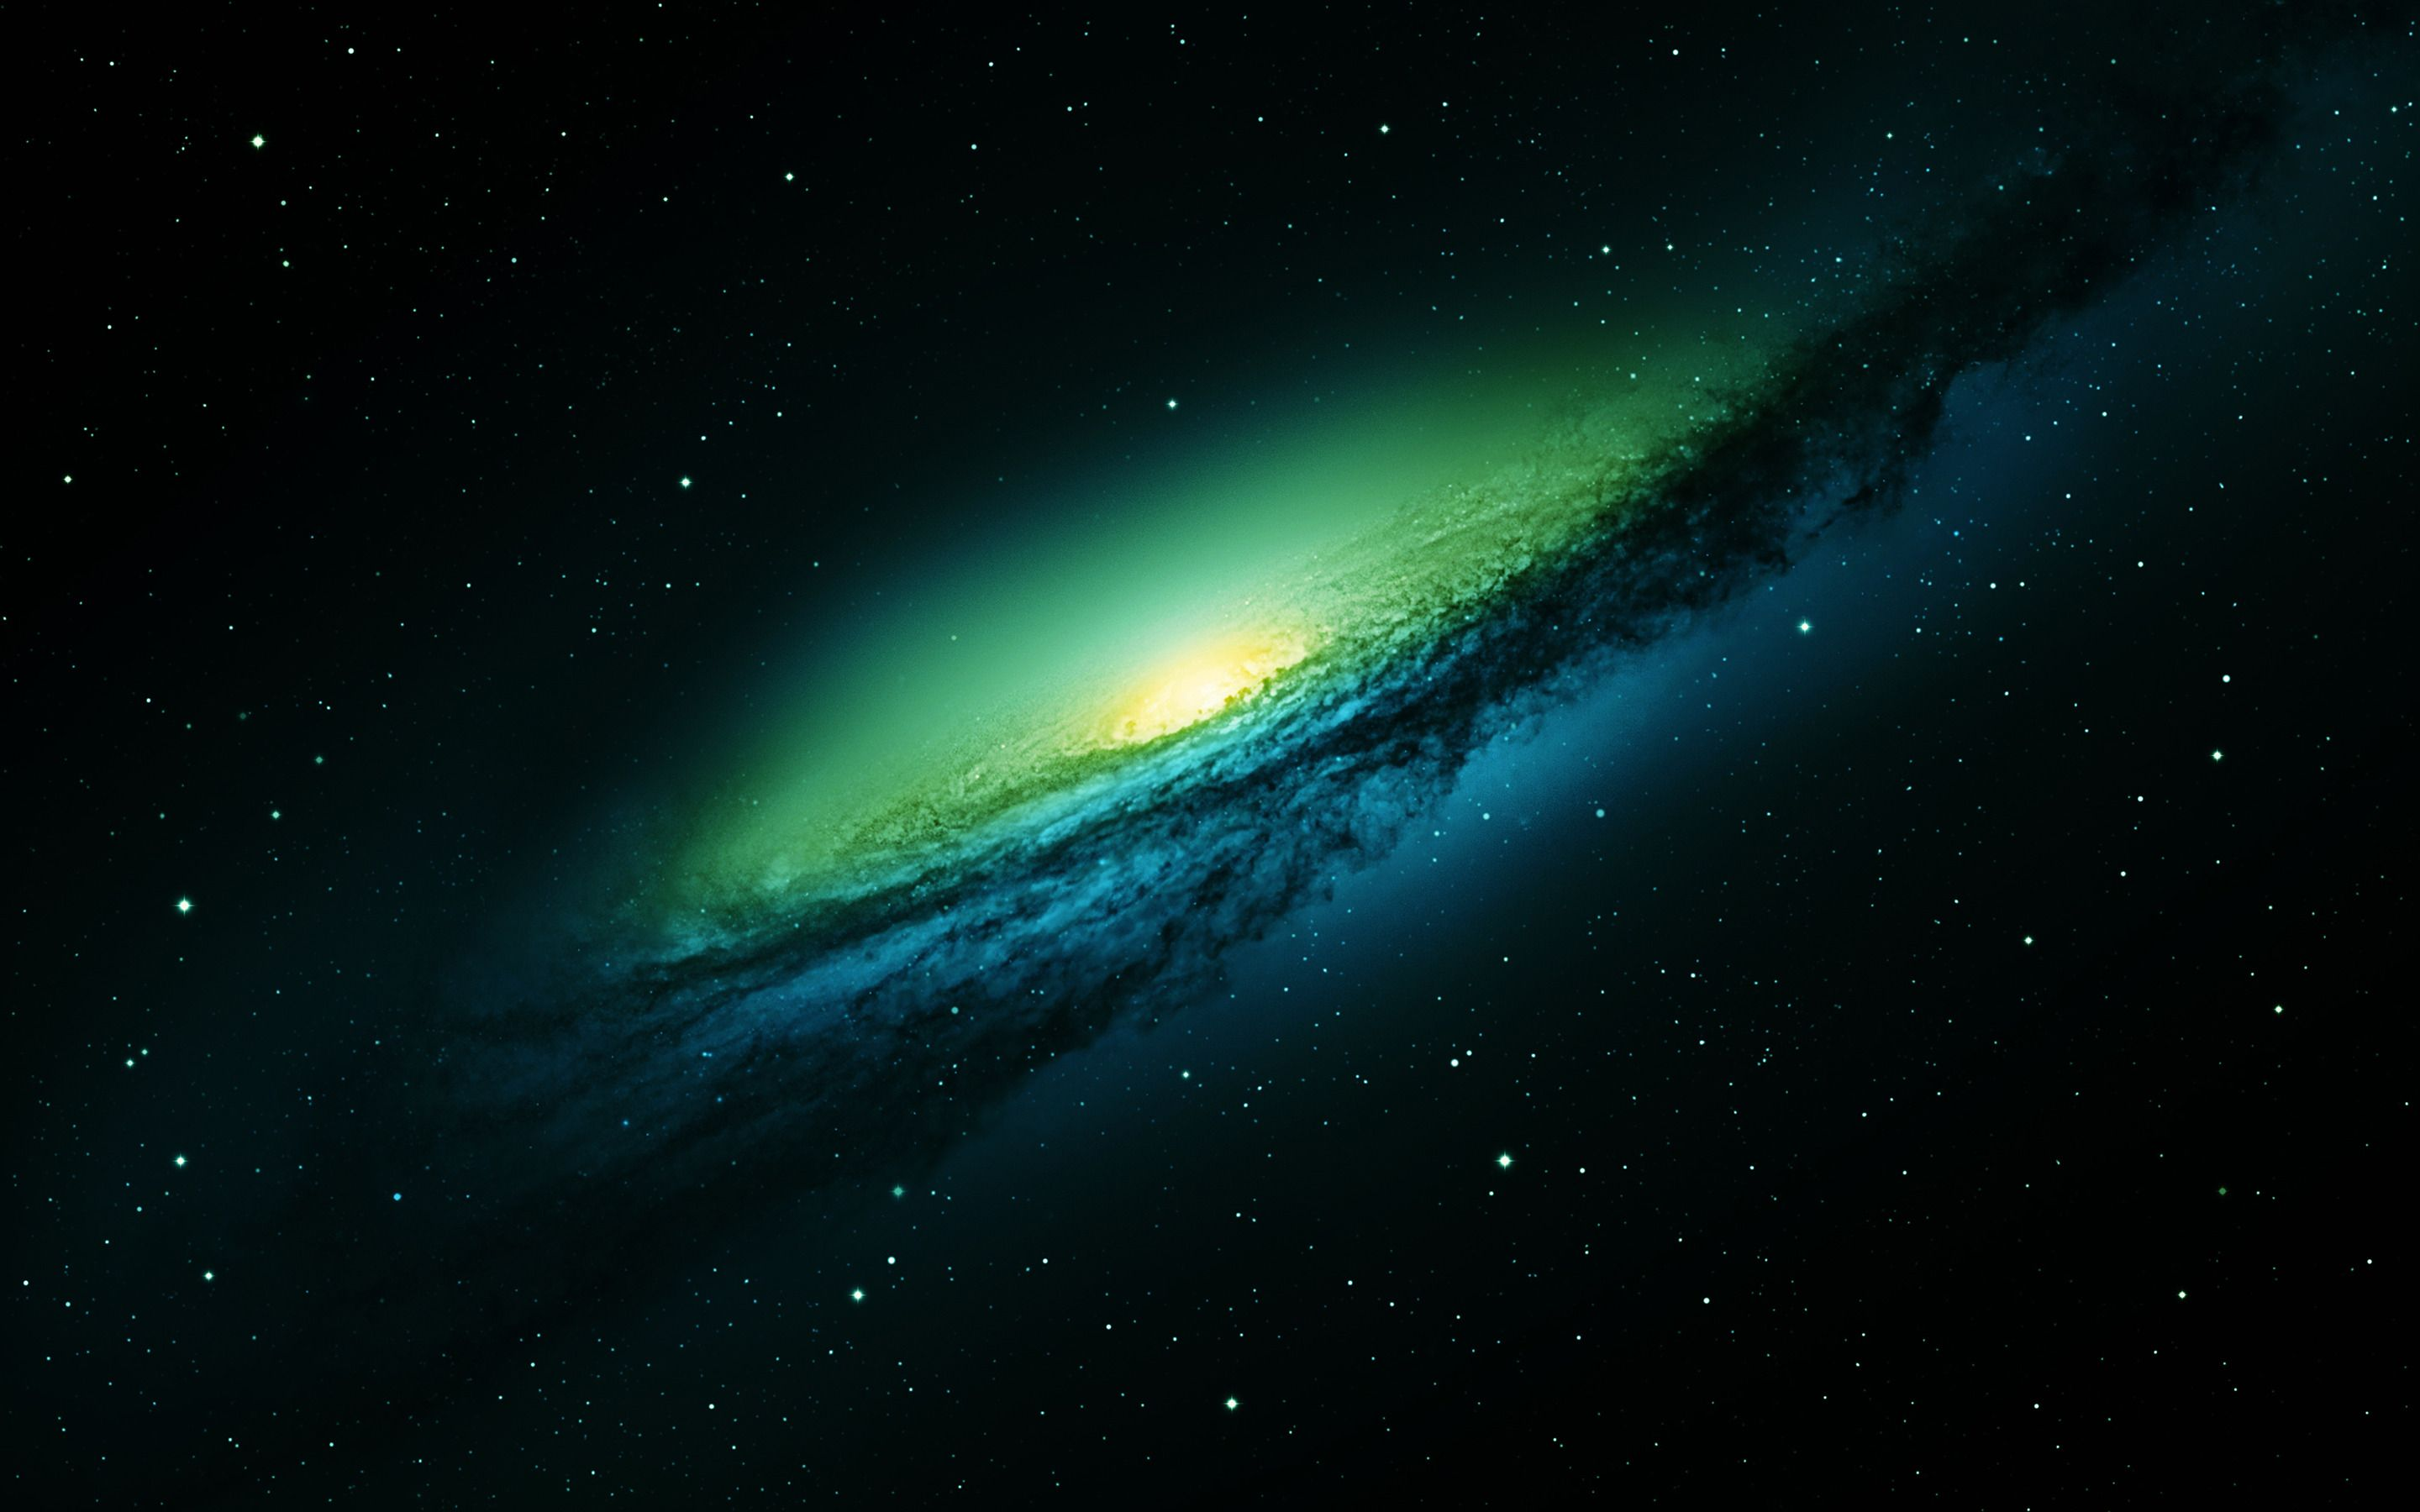 Galaxy Background For Green Screen